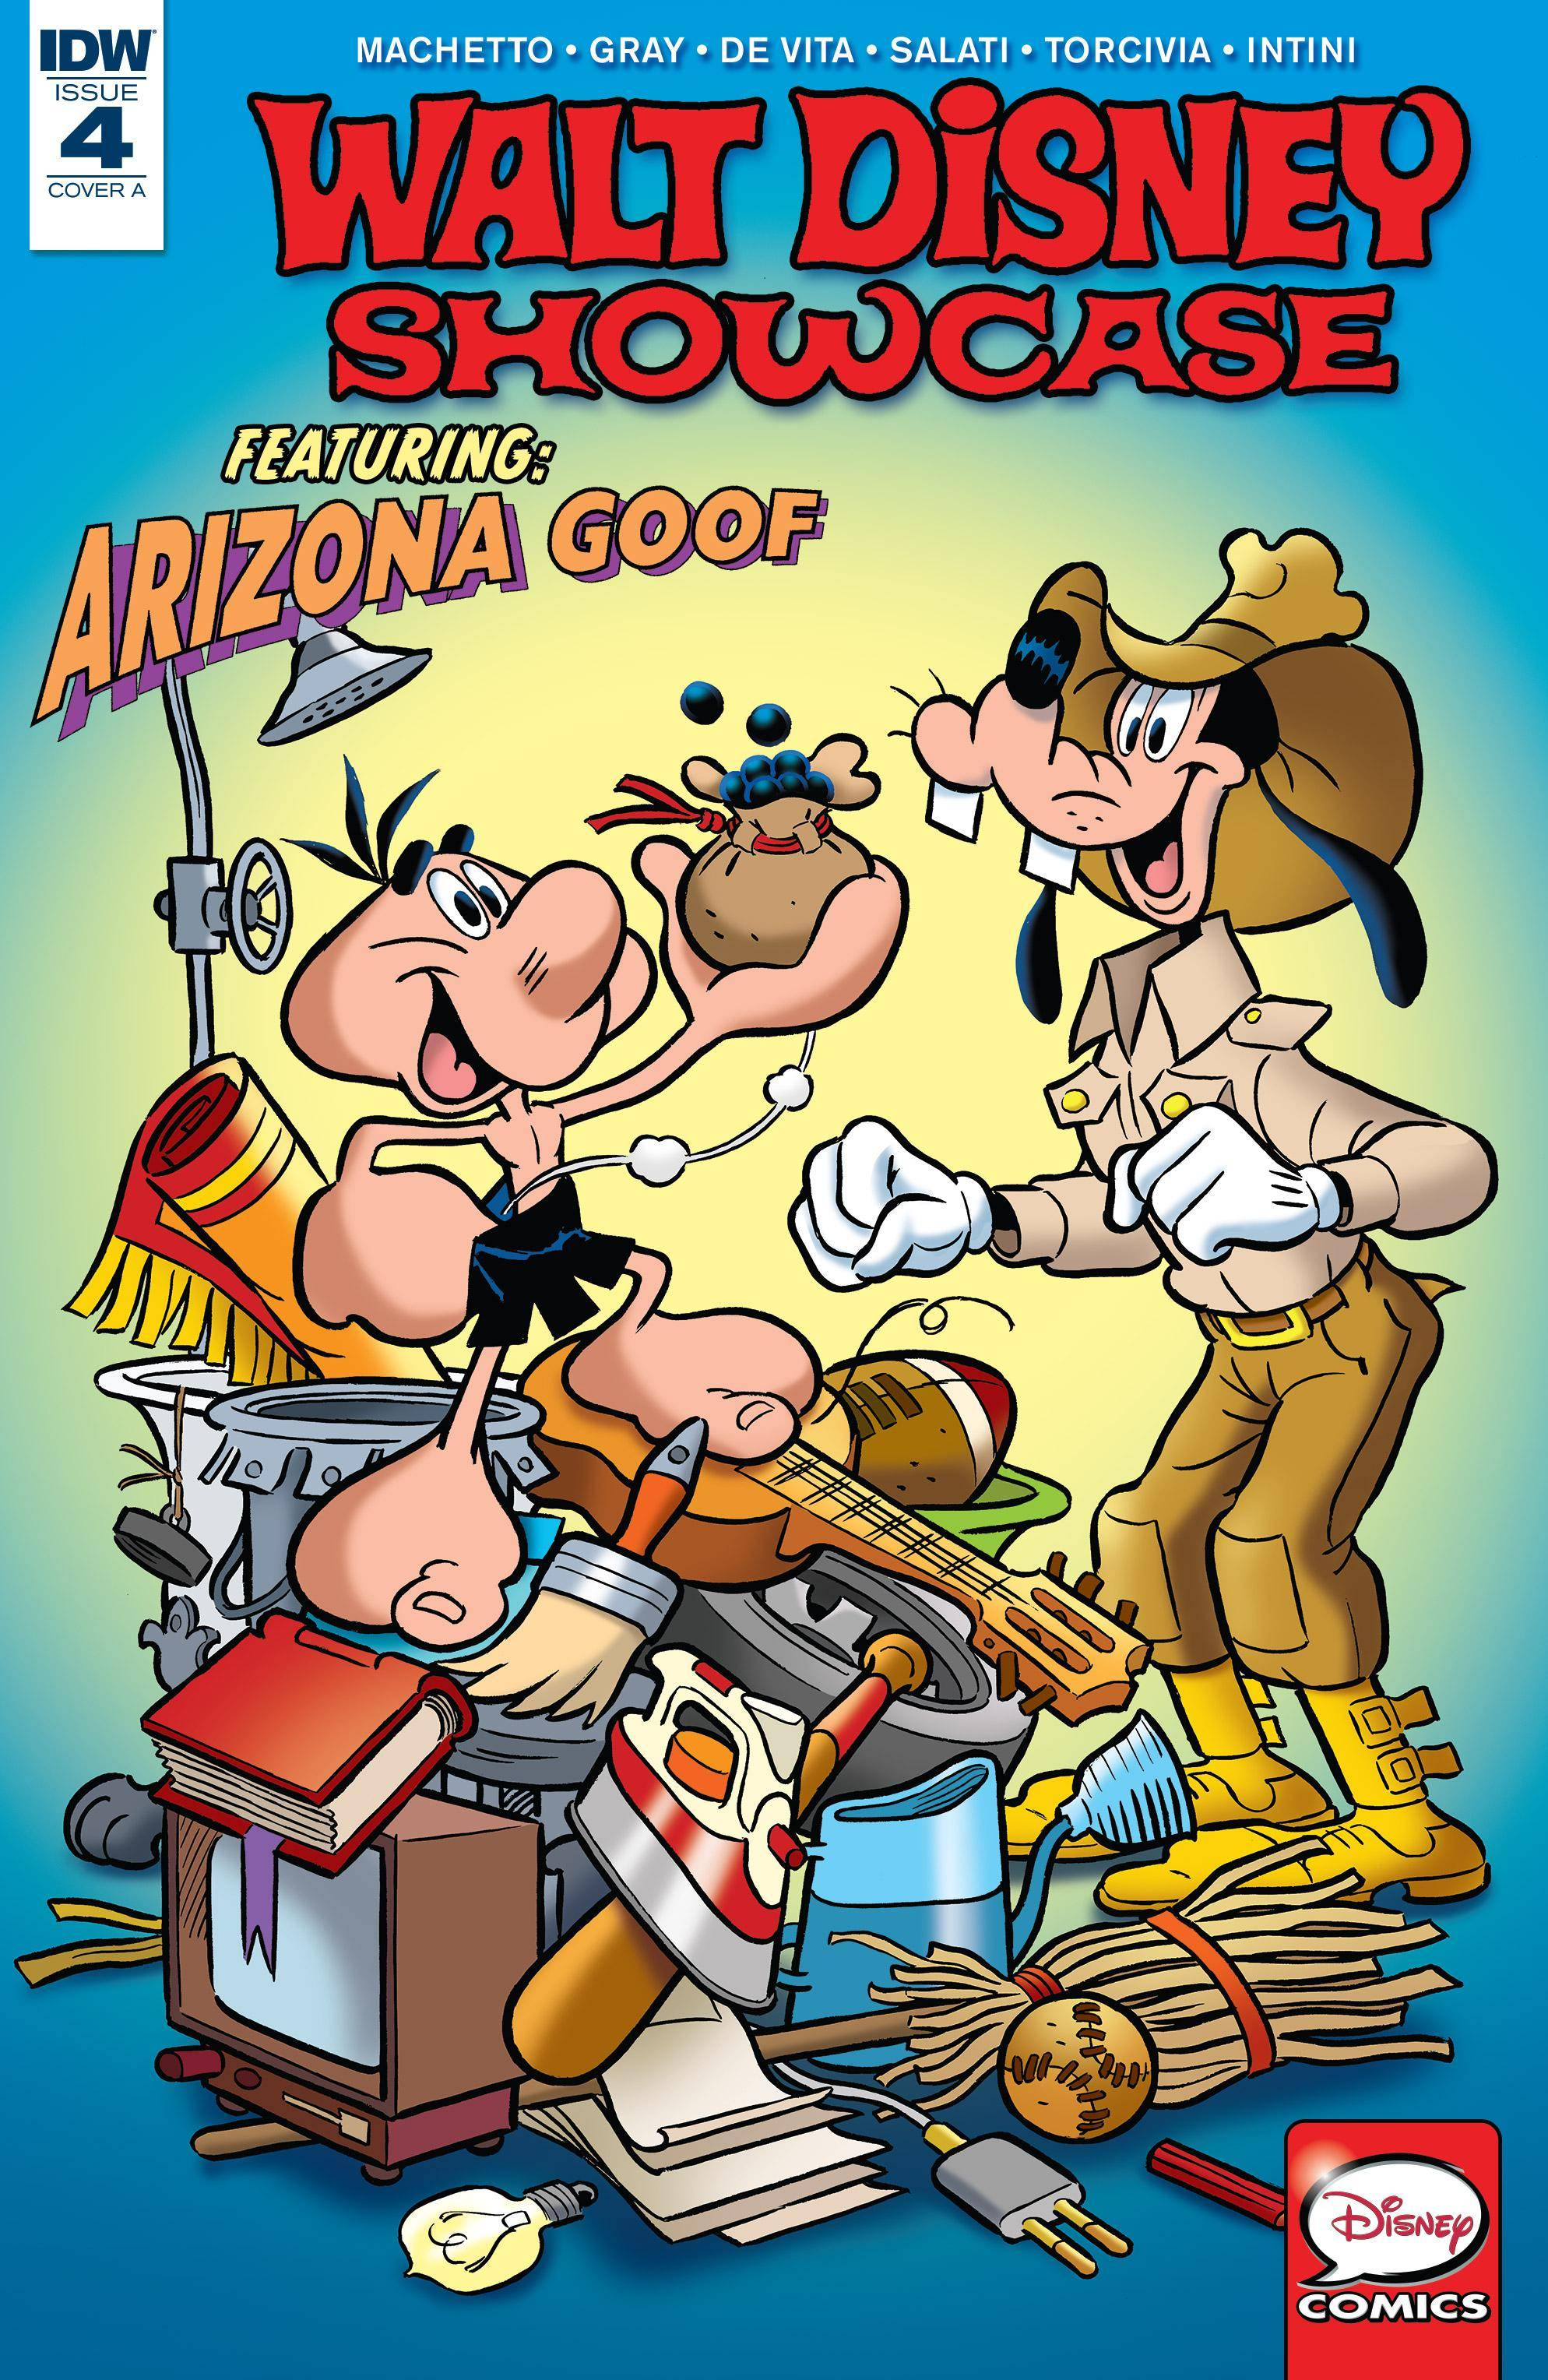 Walt Disney Showcase 004-Arizona Goof 2018 digital Salem